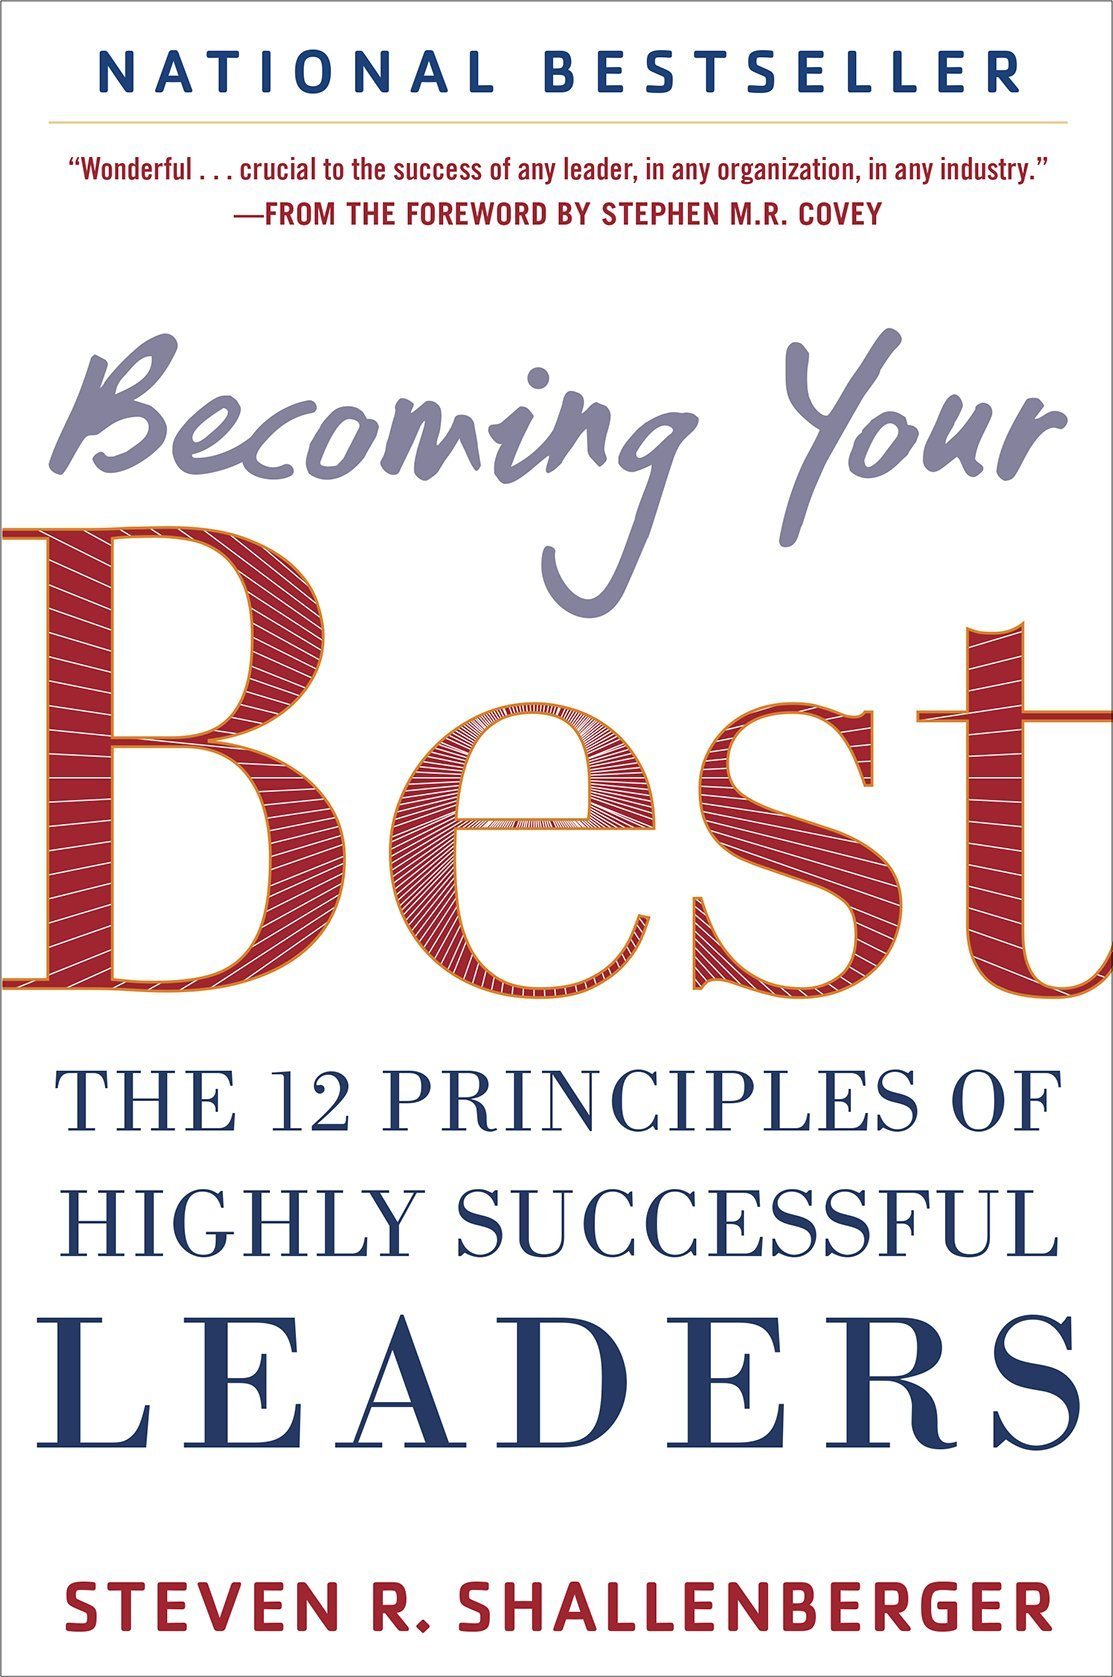 Becoming your best the 12 principles of highly successful leaders becoming your best the 12 principles of highly successful leaders steve shallenberger 9780071839983 amazon books magicingreecefo Choice Image